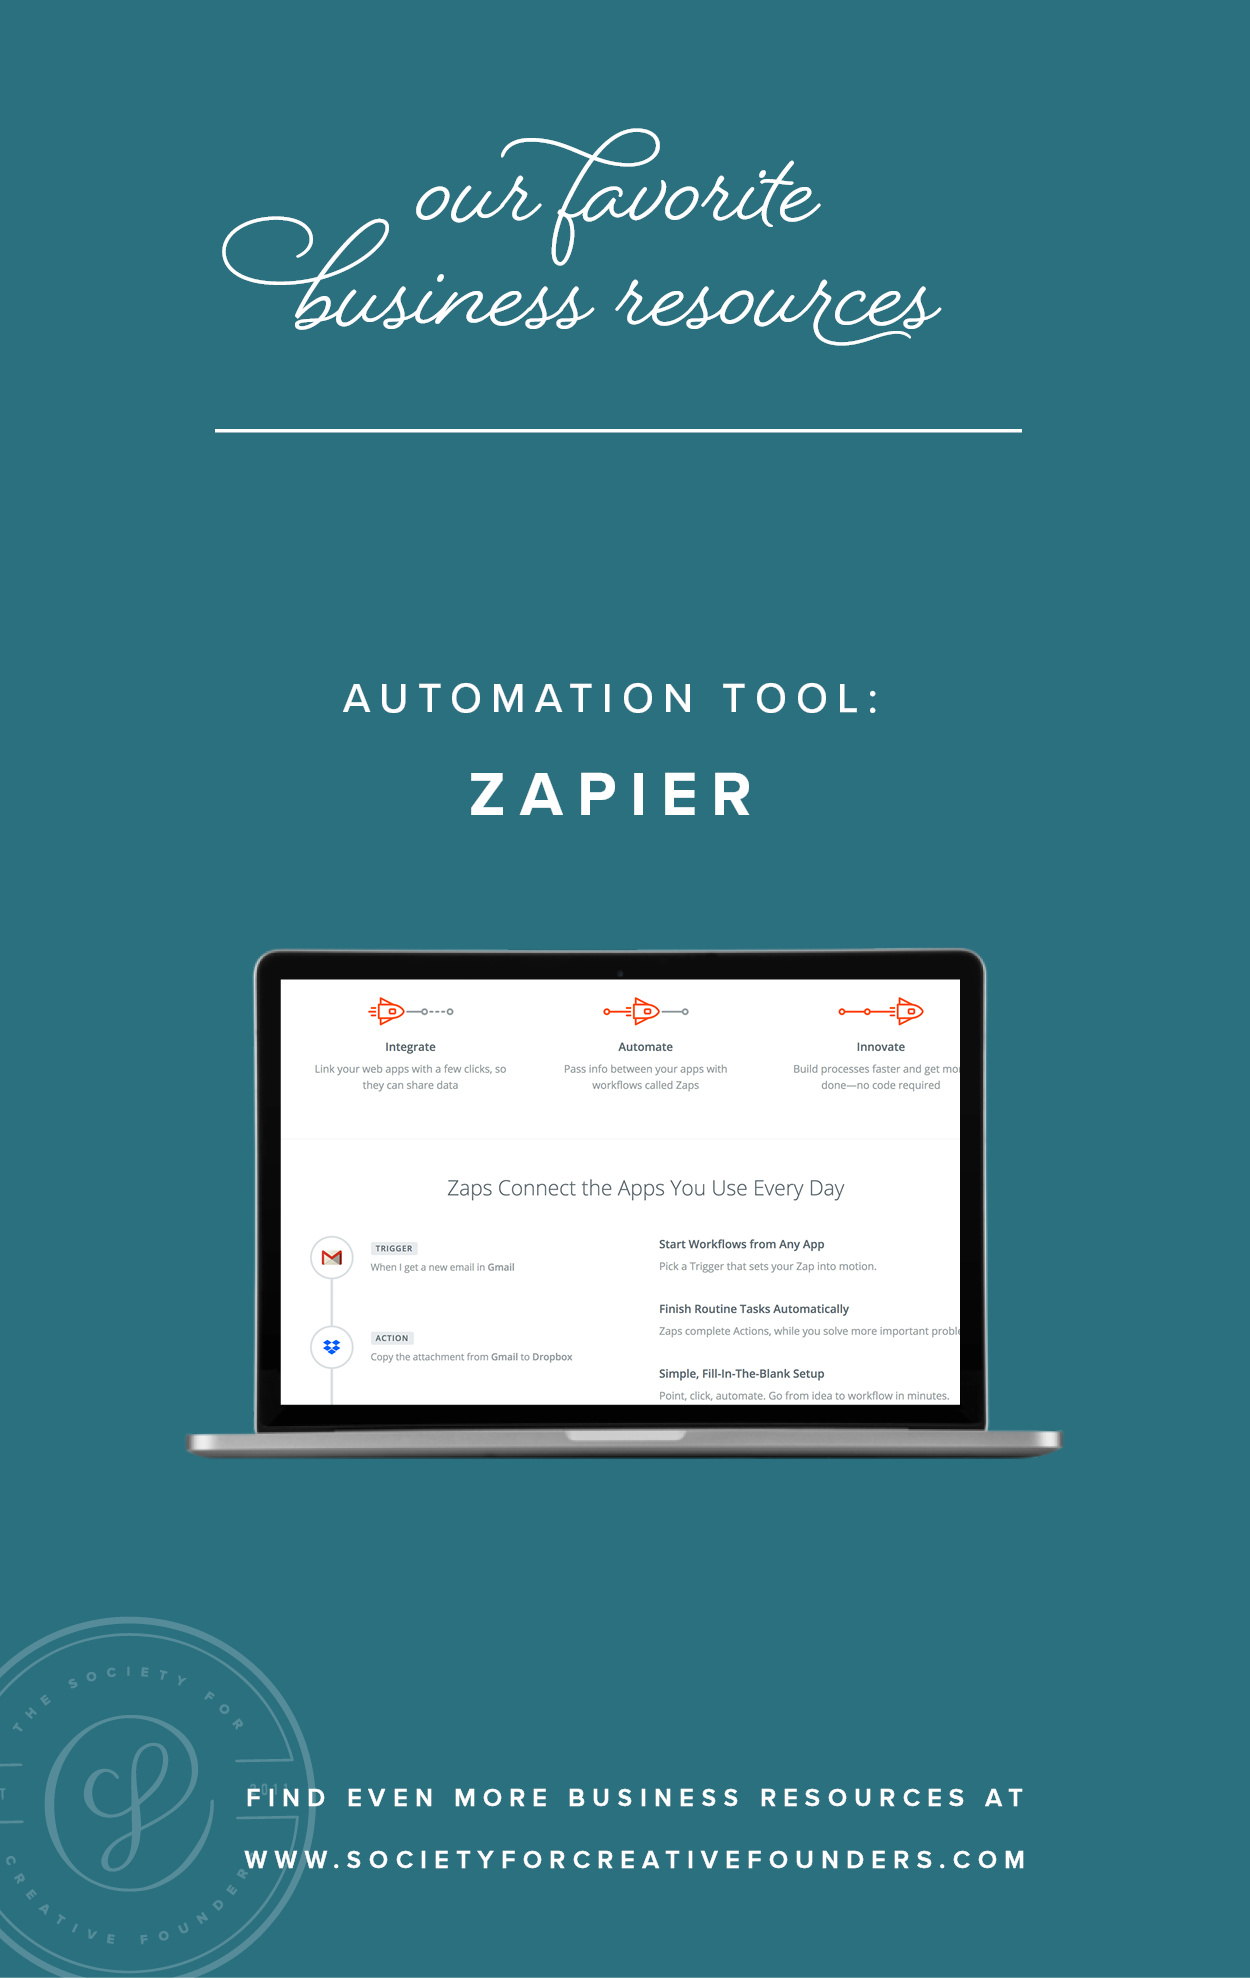 Automation with Zapier  - Favorite Business Resources from Society for Creative Founders